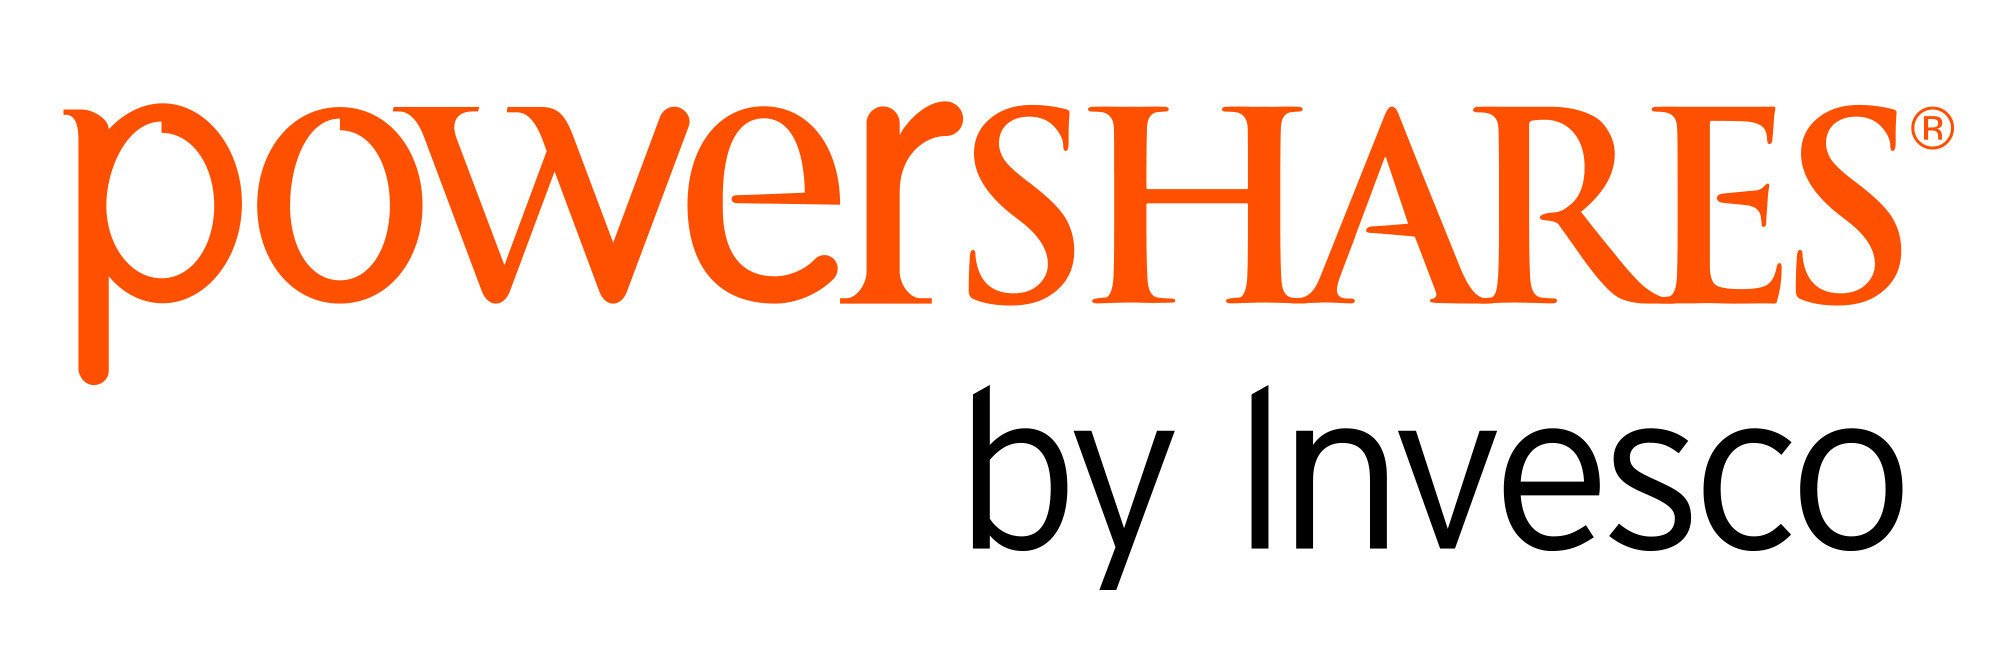 PowerShares Fin. Preferred Port. logo